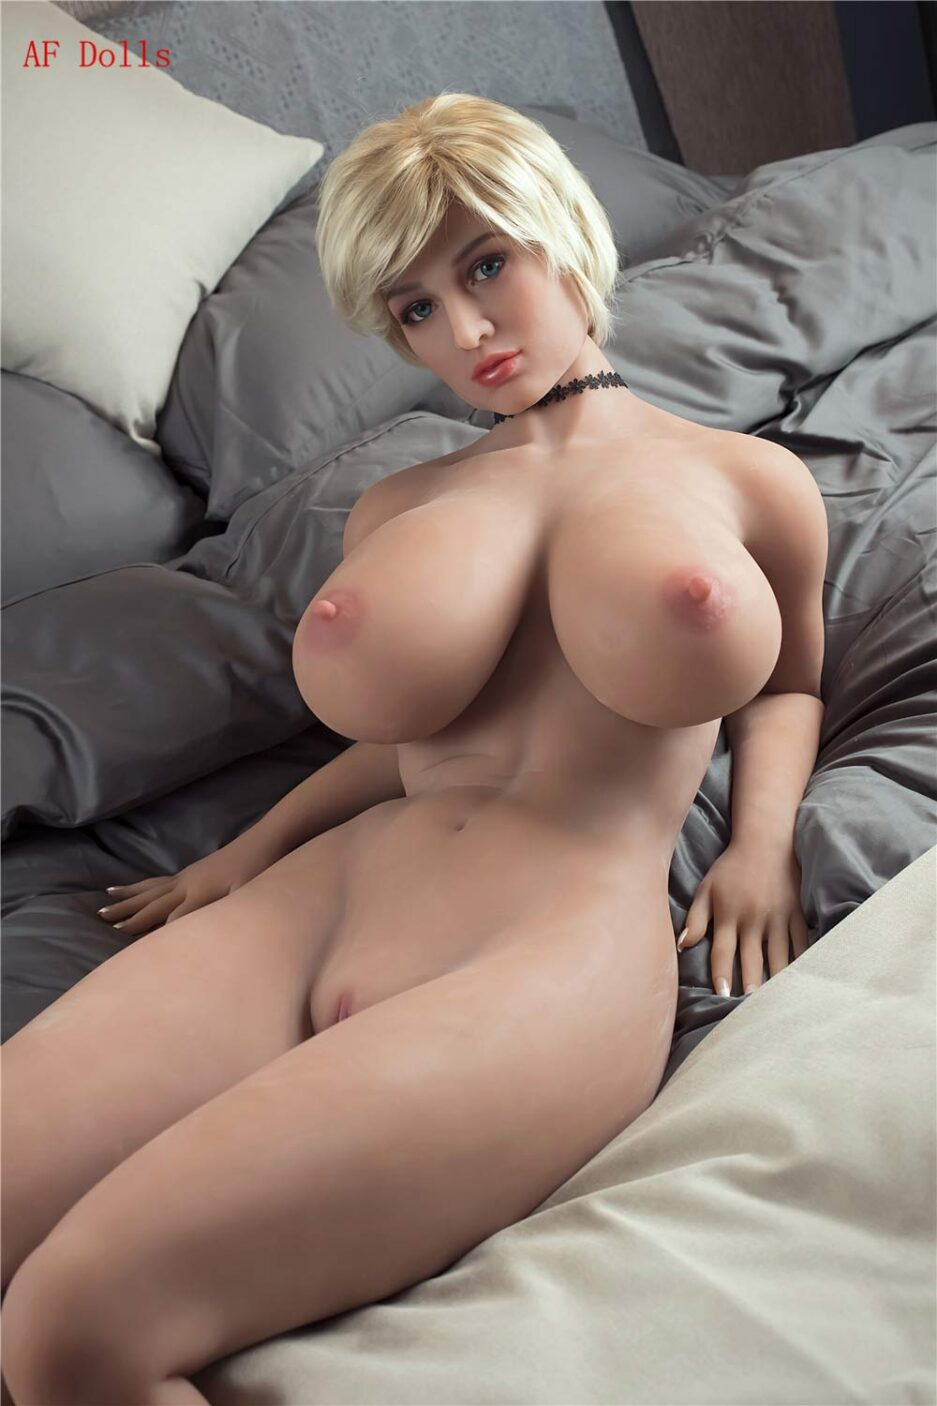 Big breasted sex doll with breasts exposed